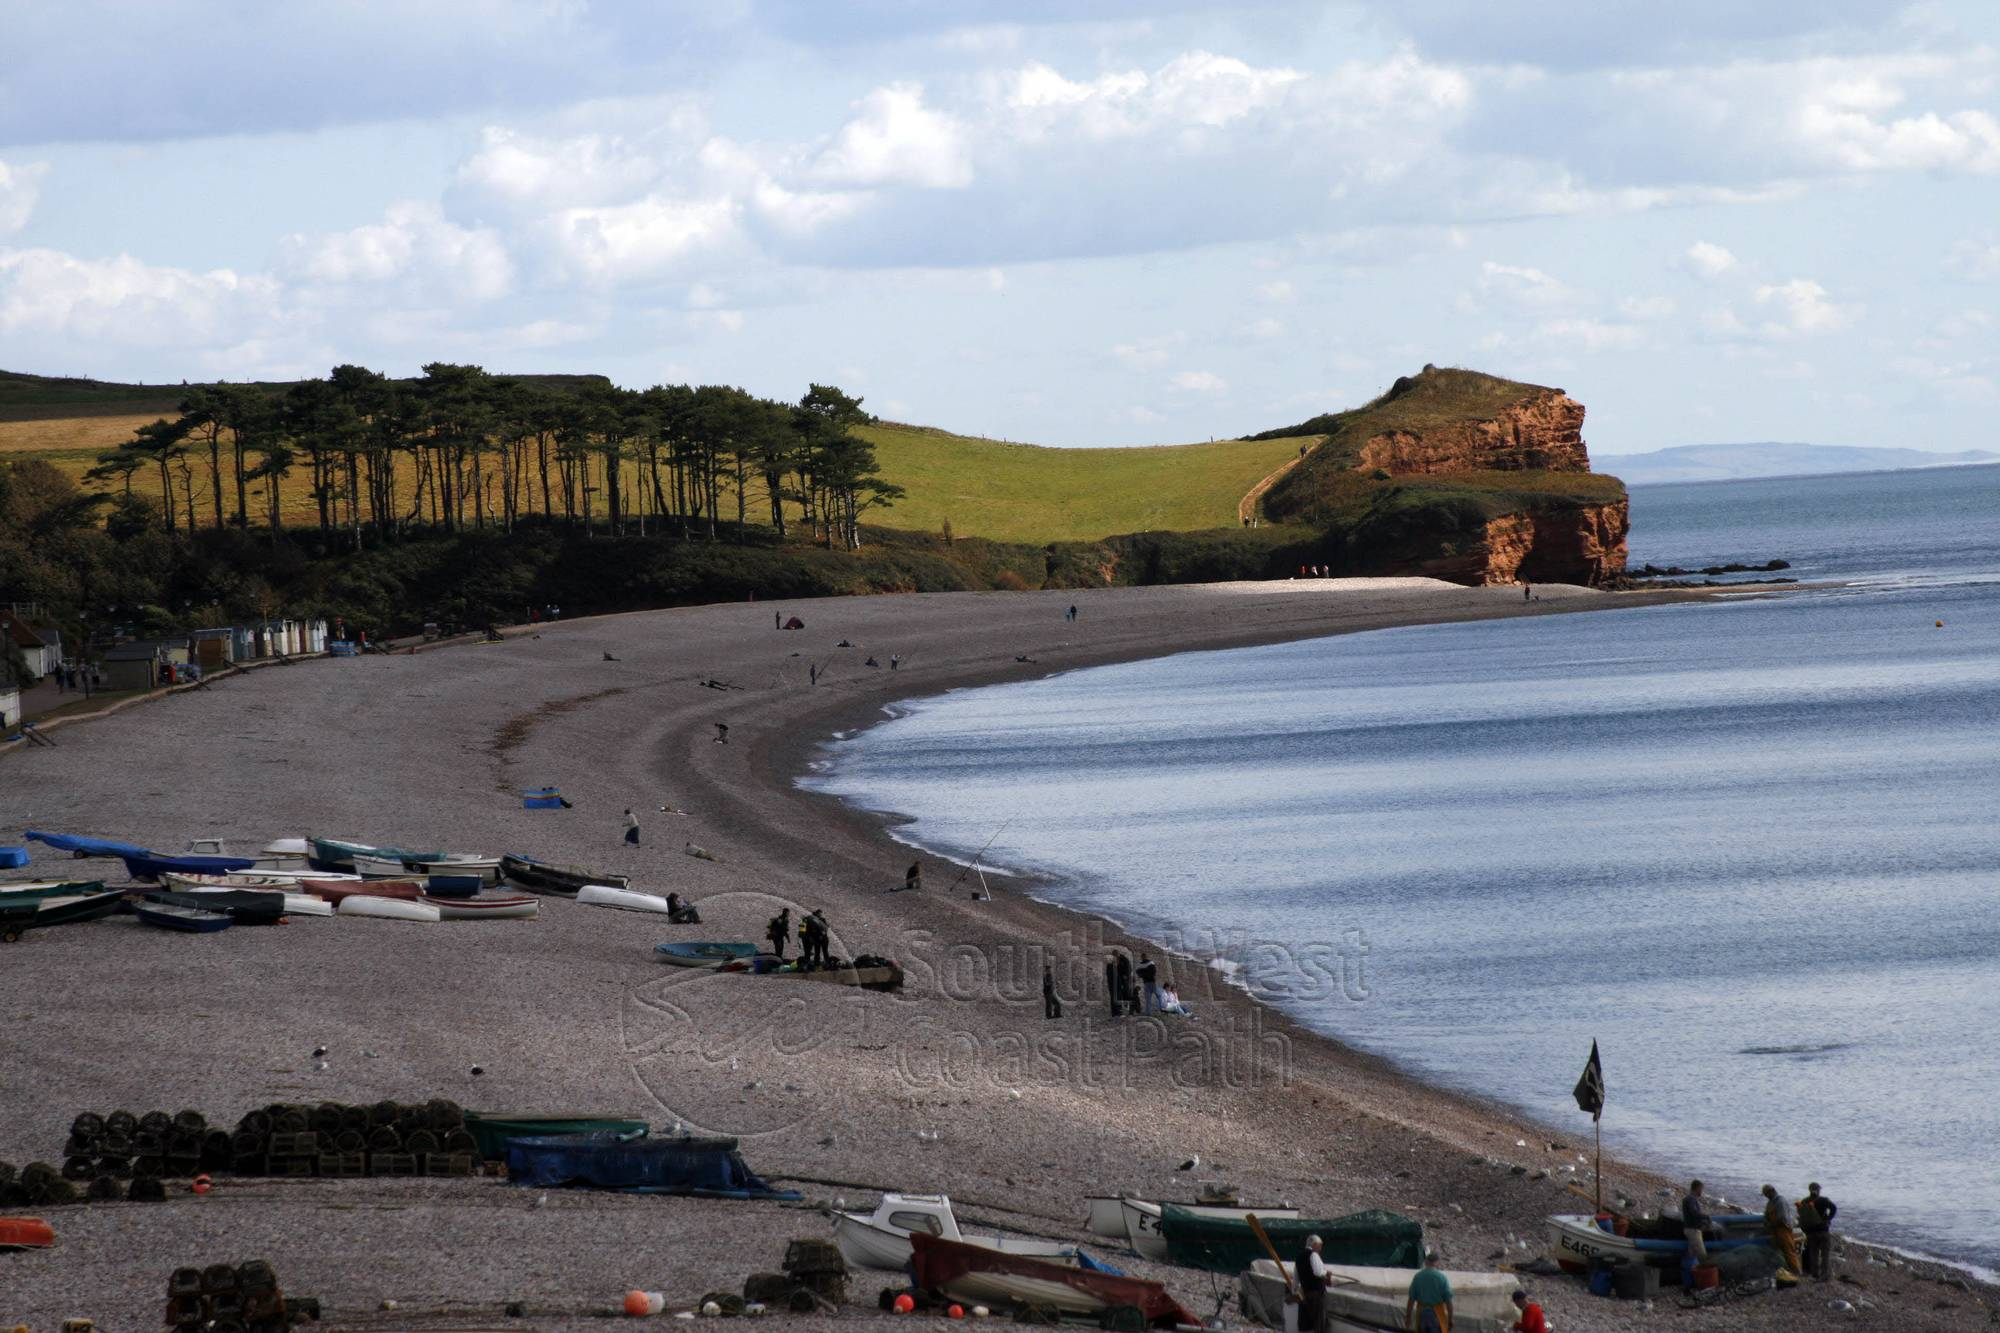 Bed And Breakfast Budleigh Salterton Colaton Raleigh To Budleigh Salterton Walk South West Coast Path